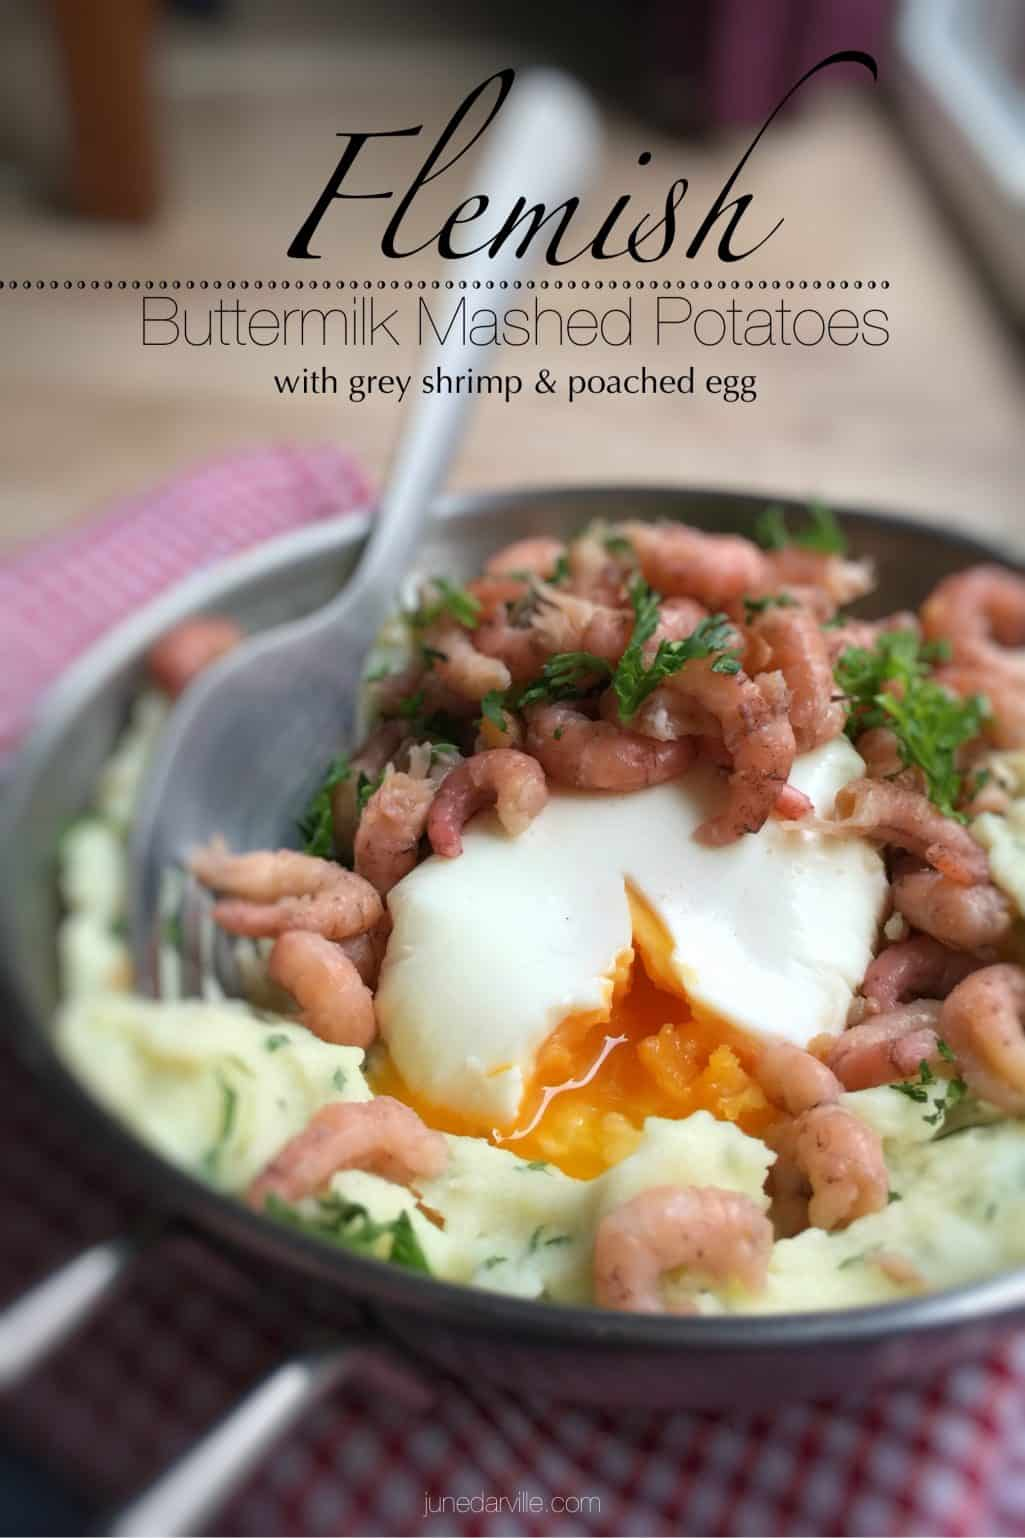 Classic Flemish buttermilk mashed potatoes with fresh grey shrimp, a creamy poached egg and drizzled with melted butter sauce...